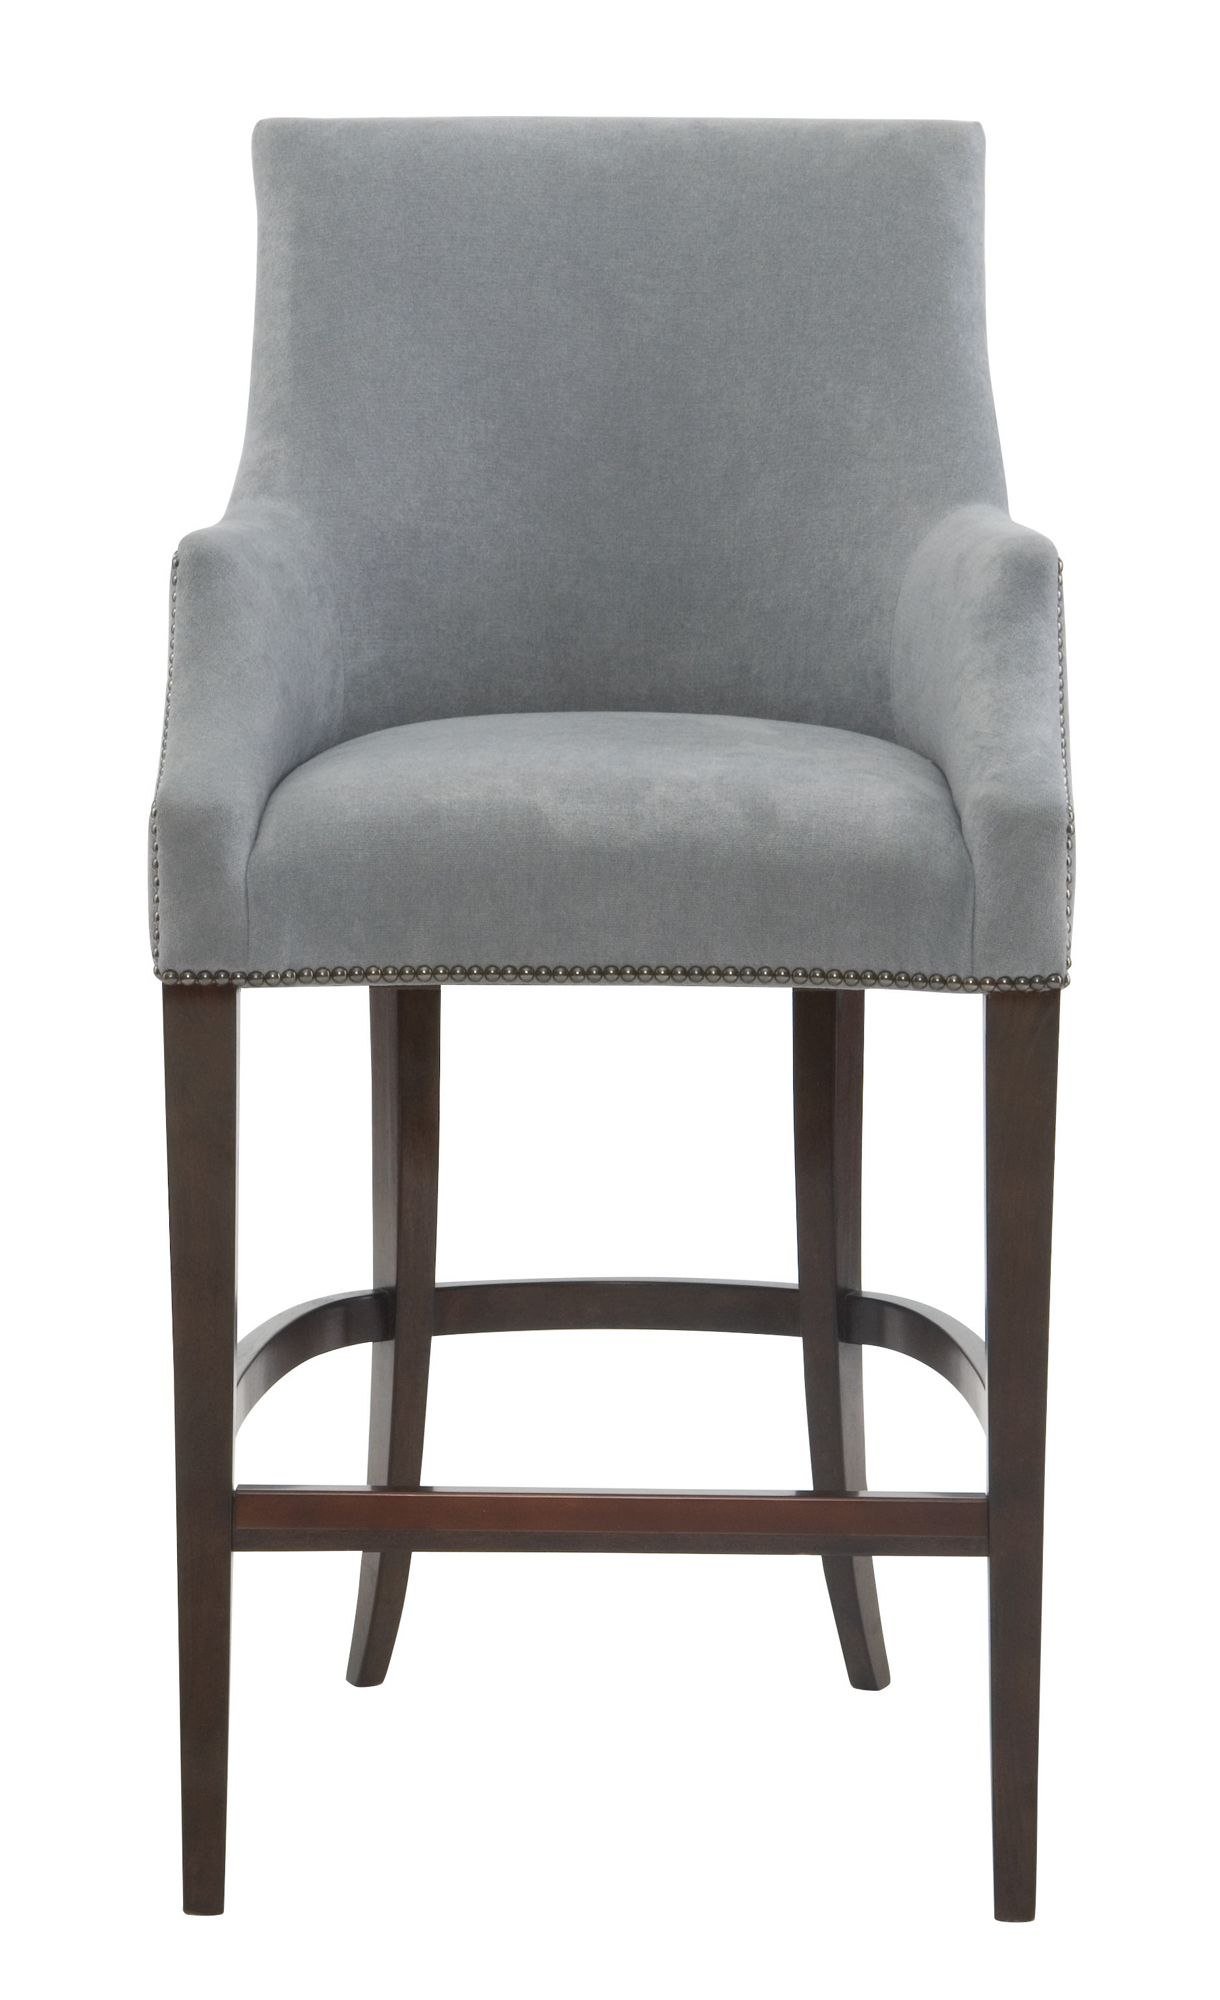 Keeley Stool. Multiple fabric options. Need to check if